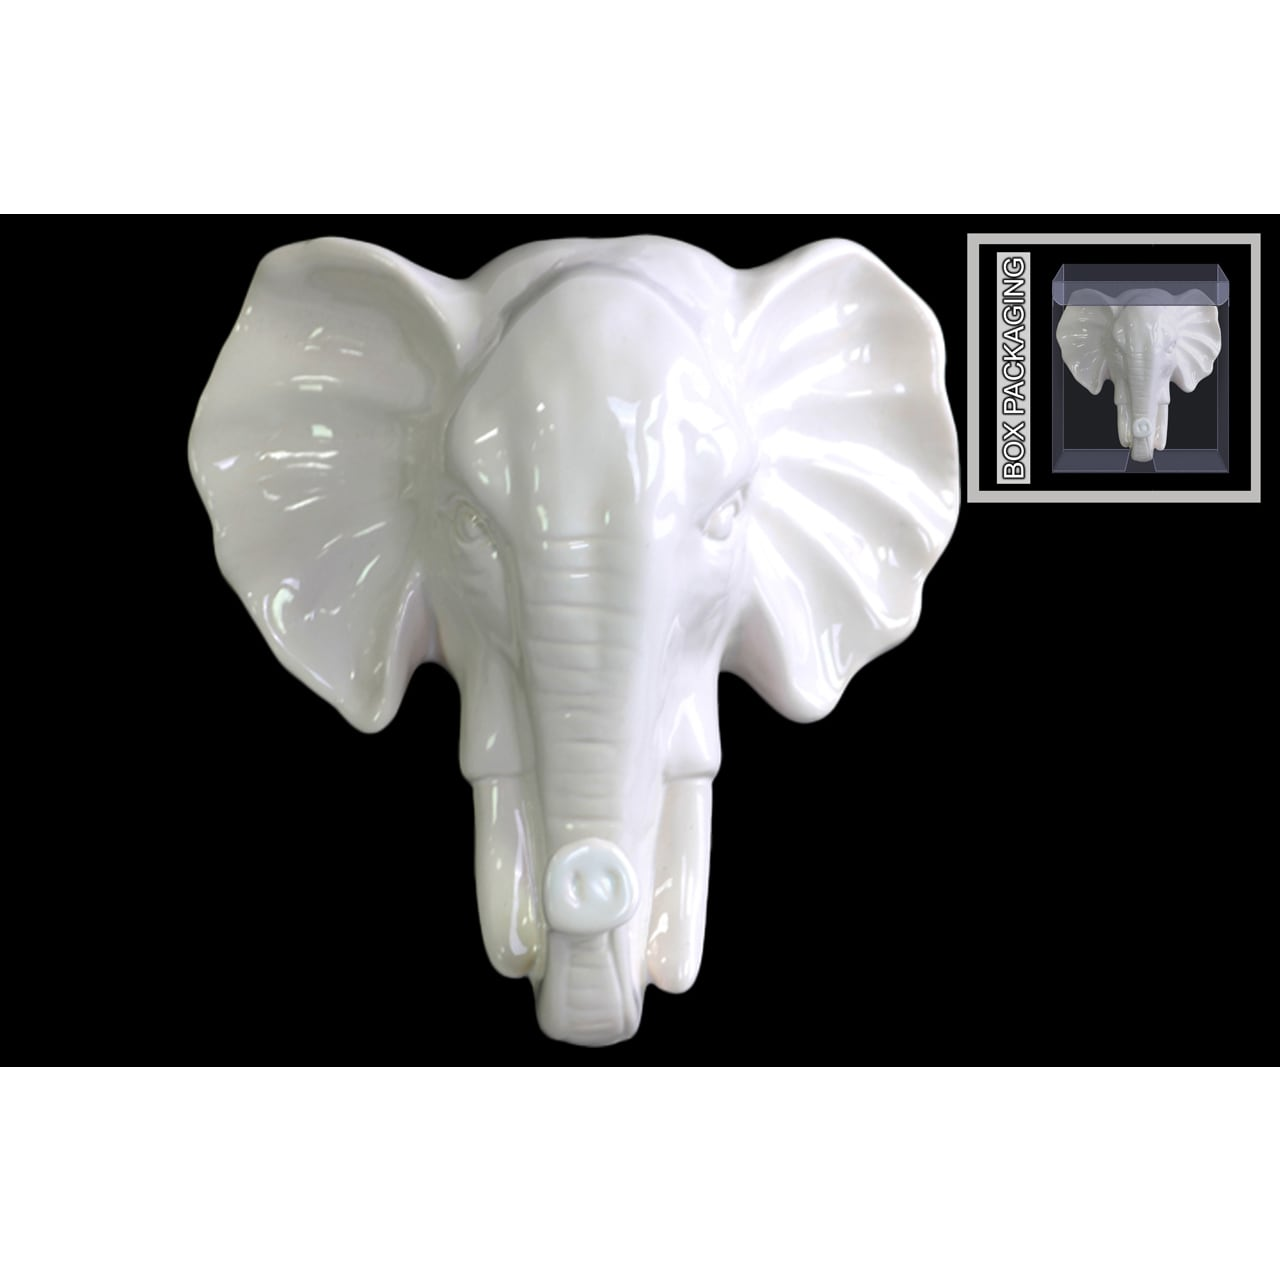 Ceramic Gloss Finish White Elephant Head Wall Decor Overstock 11016806